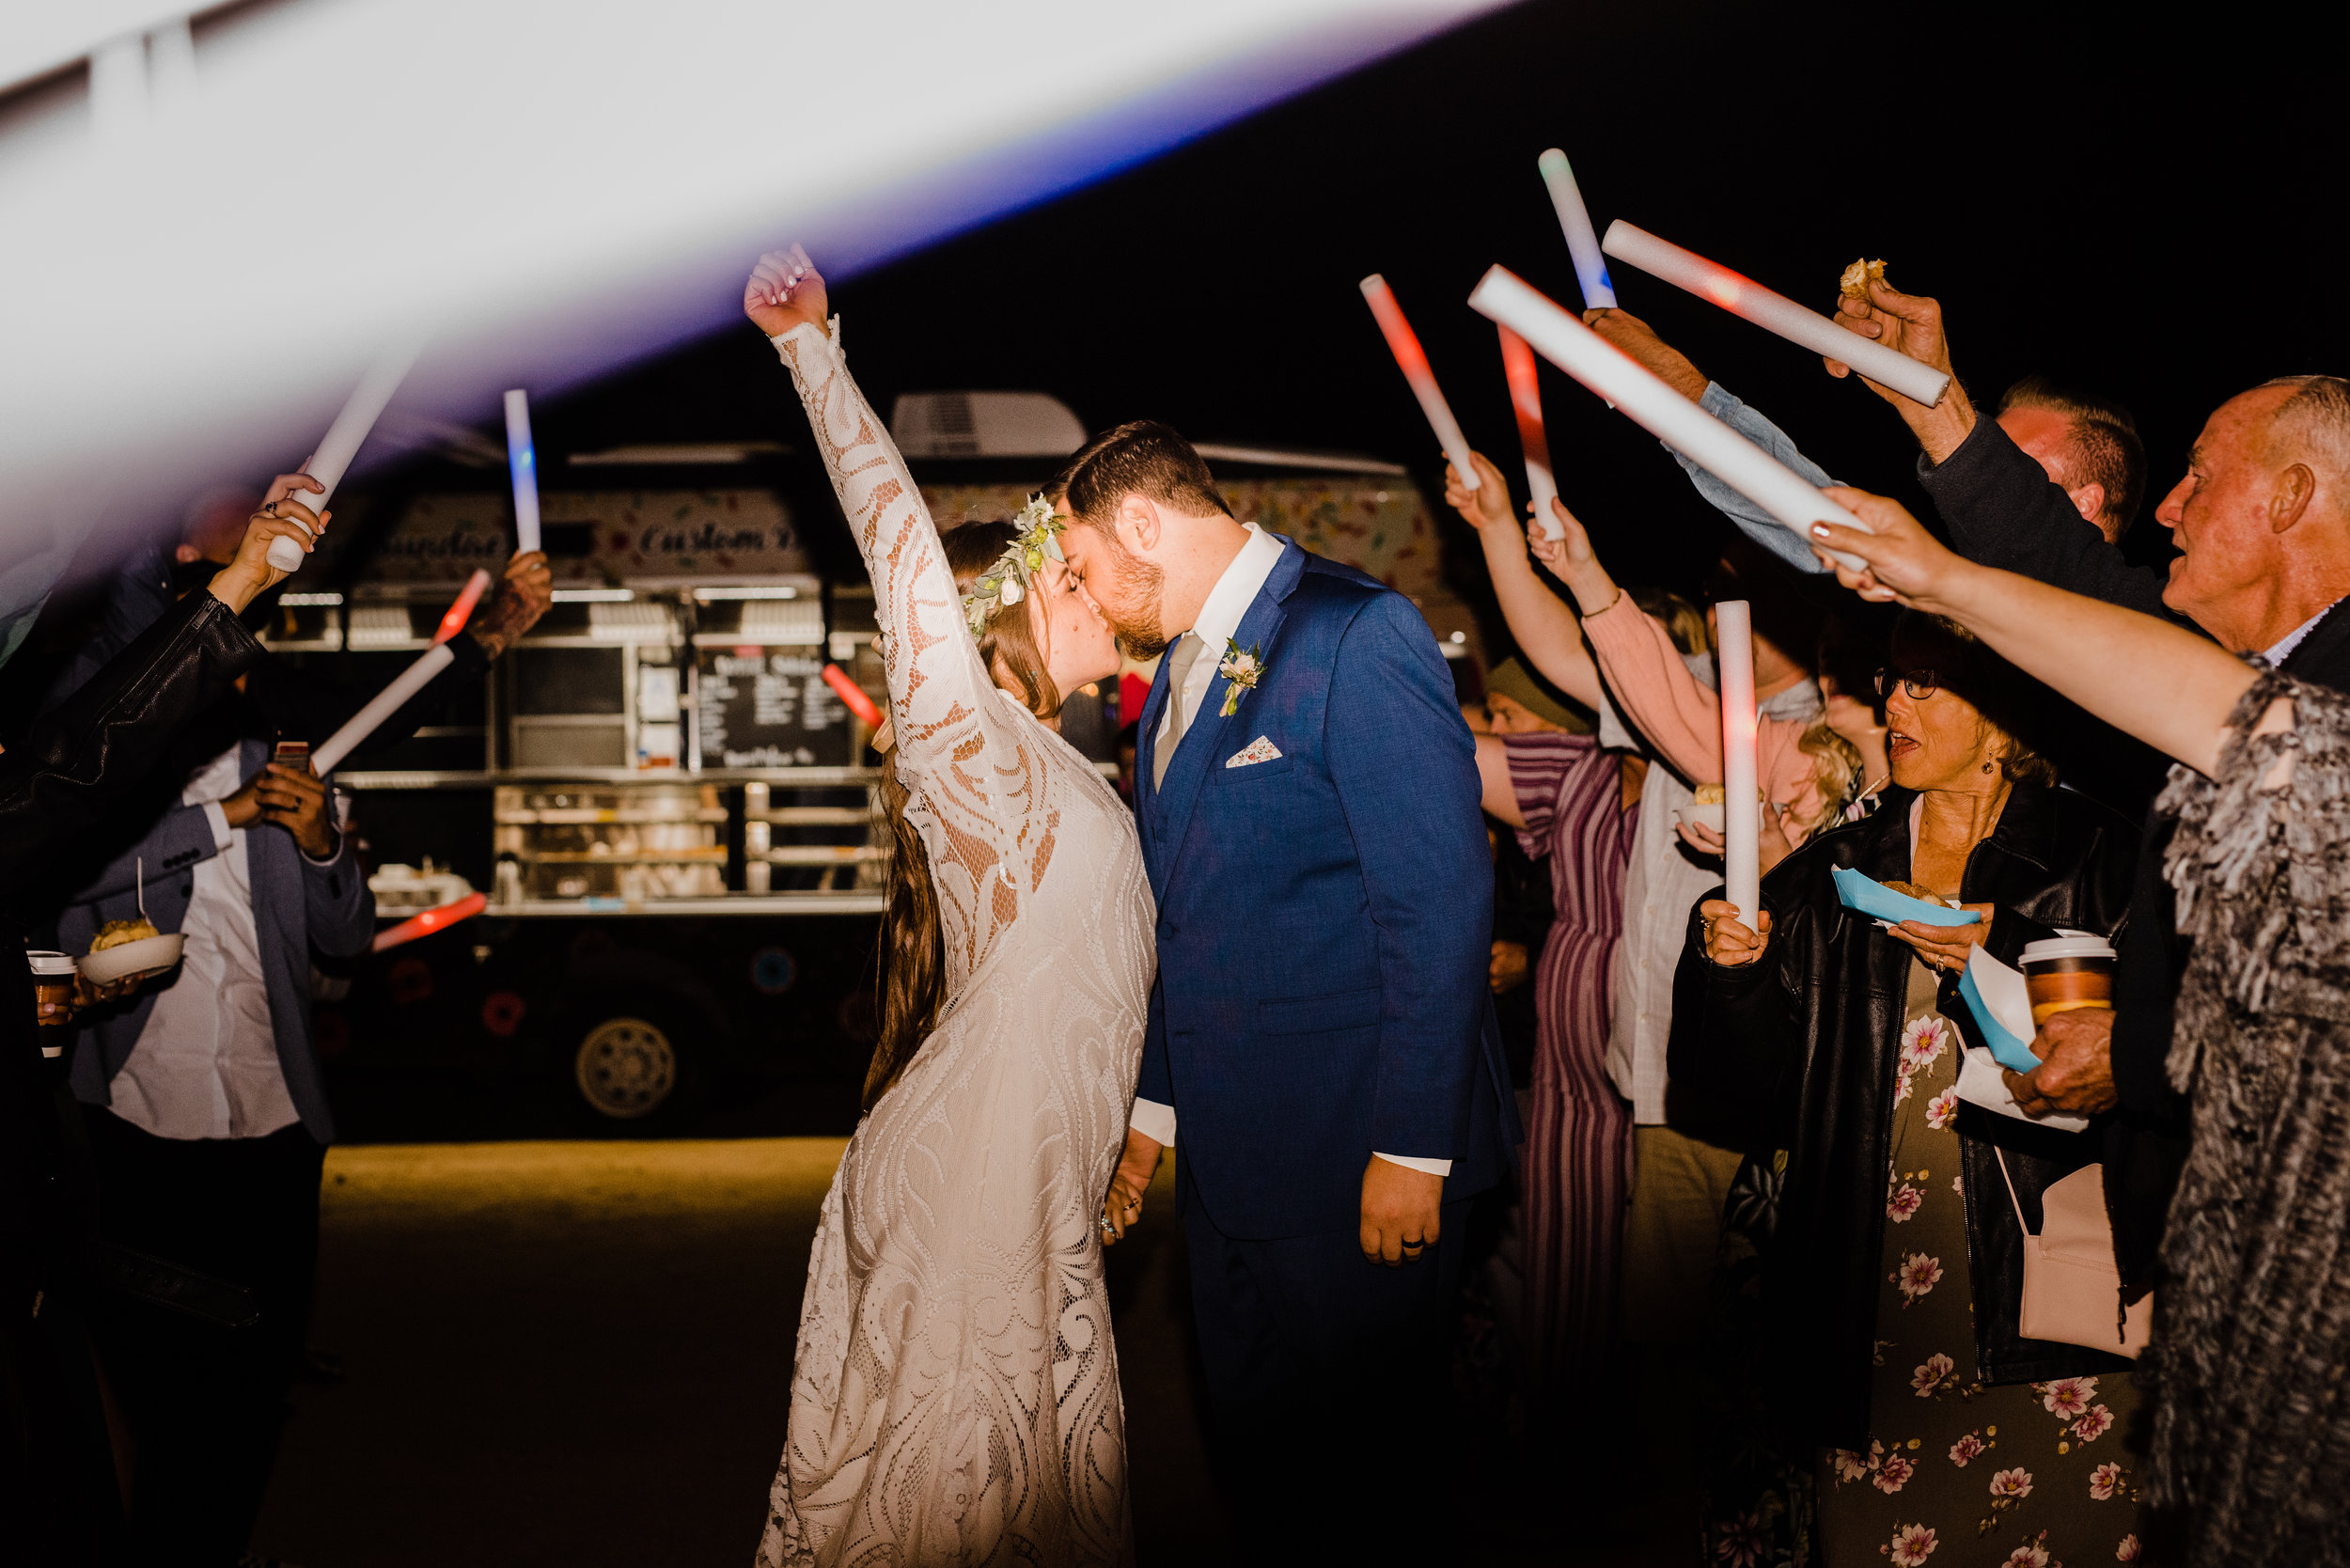 Glowstick exit for bride and groom at tumbleweed sanctuary and garden in Yucca Valley